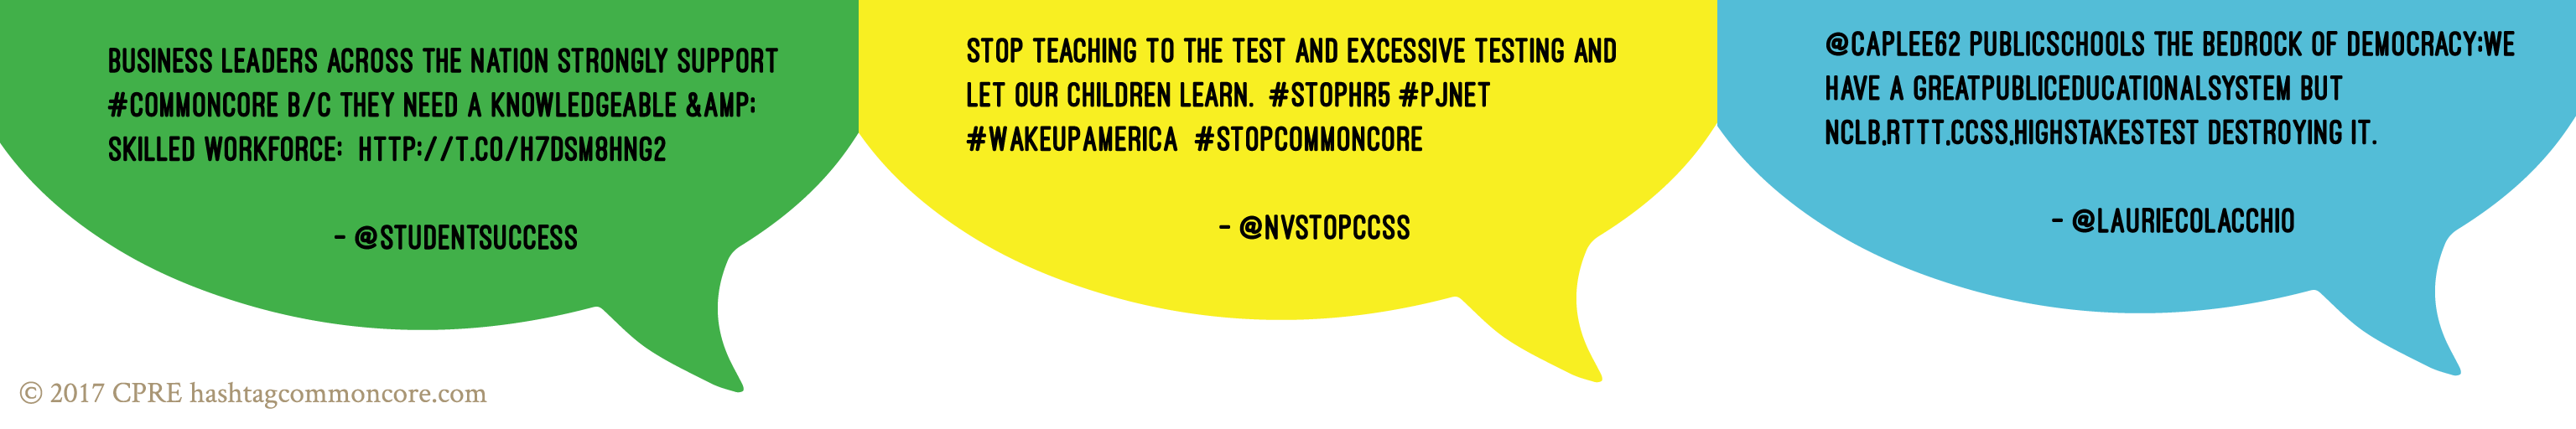 @studentsuccess, @NVstopccss, @lauriecollachio